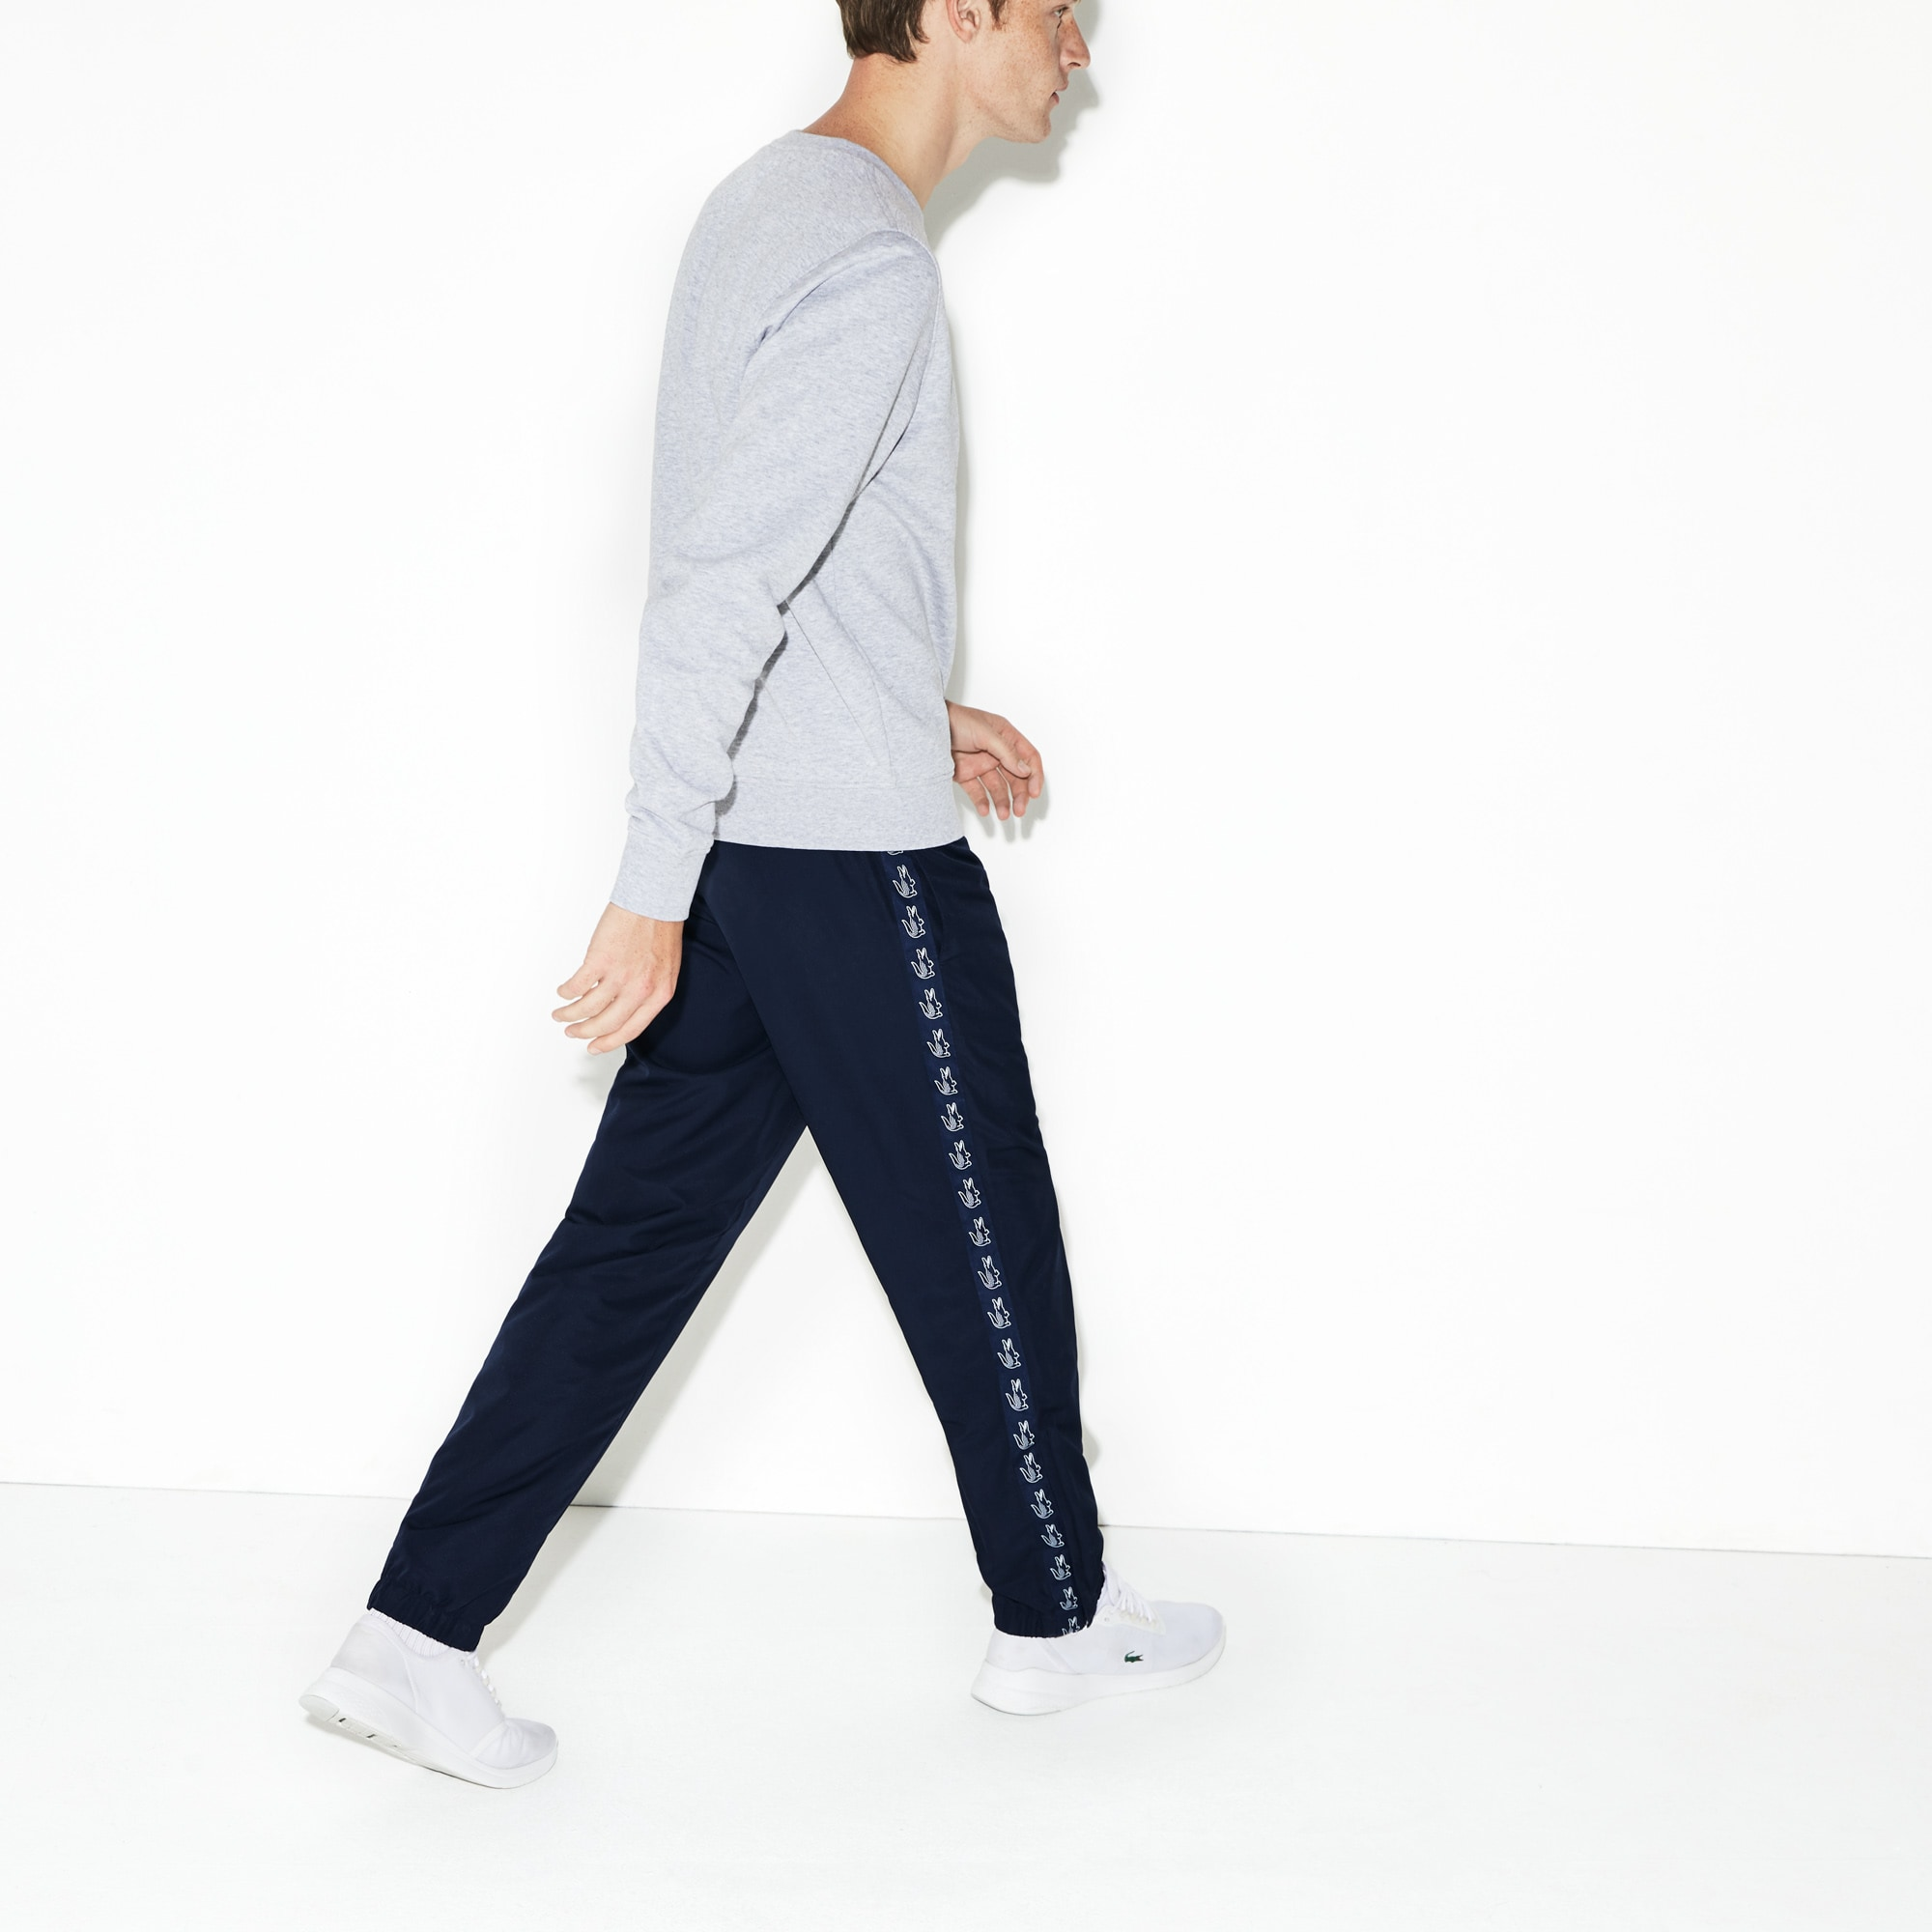 Men's SPORT Band Tennis Sweatpants